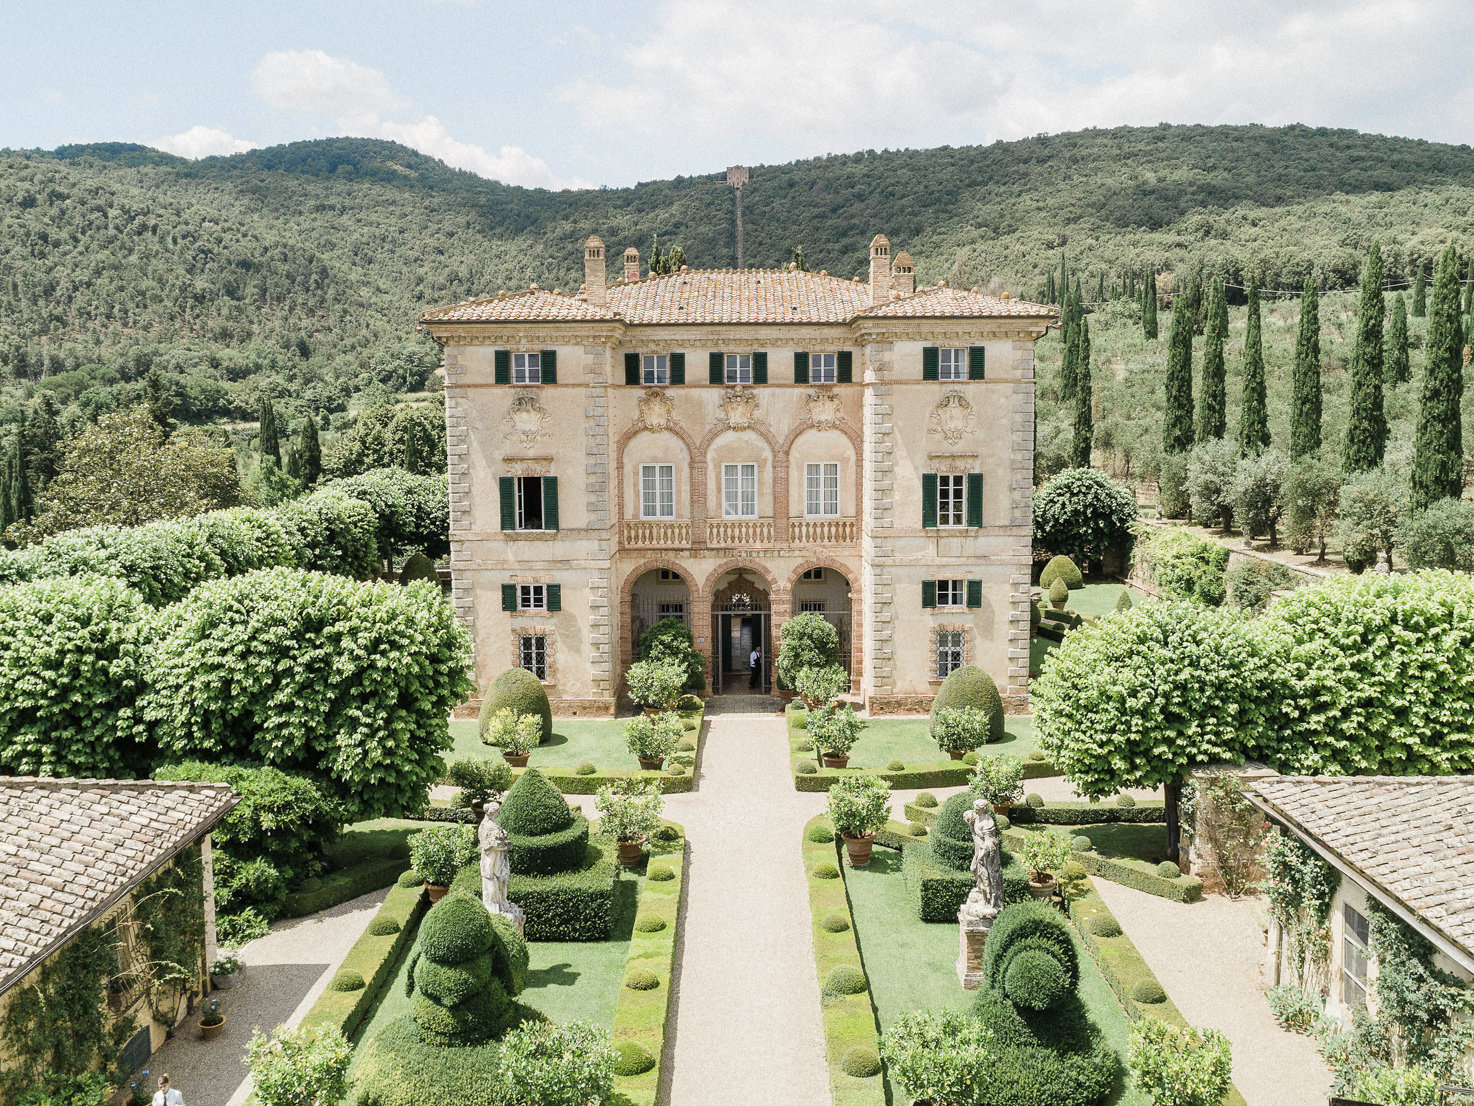 Villa Cetinale for weddings in Tuscany